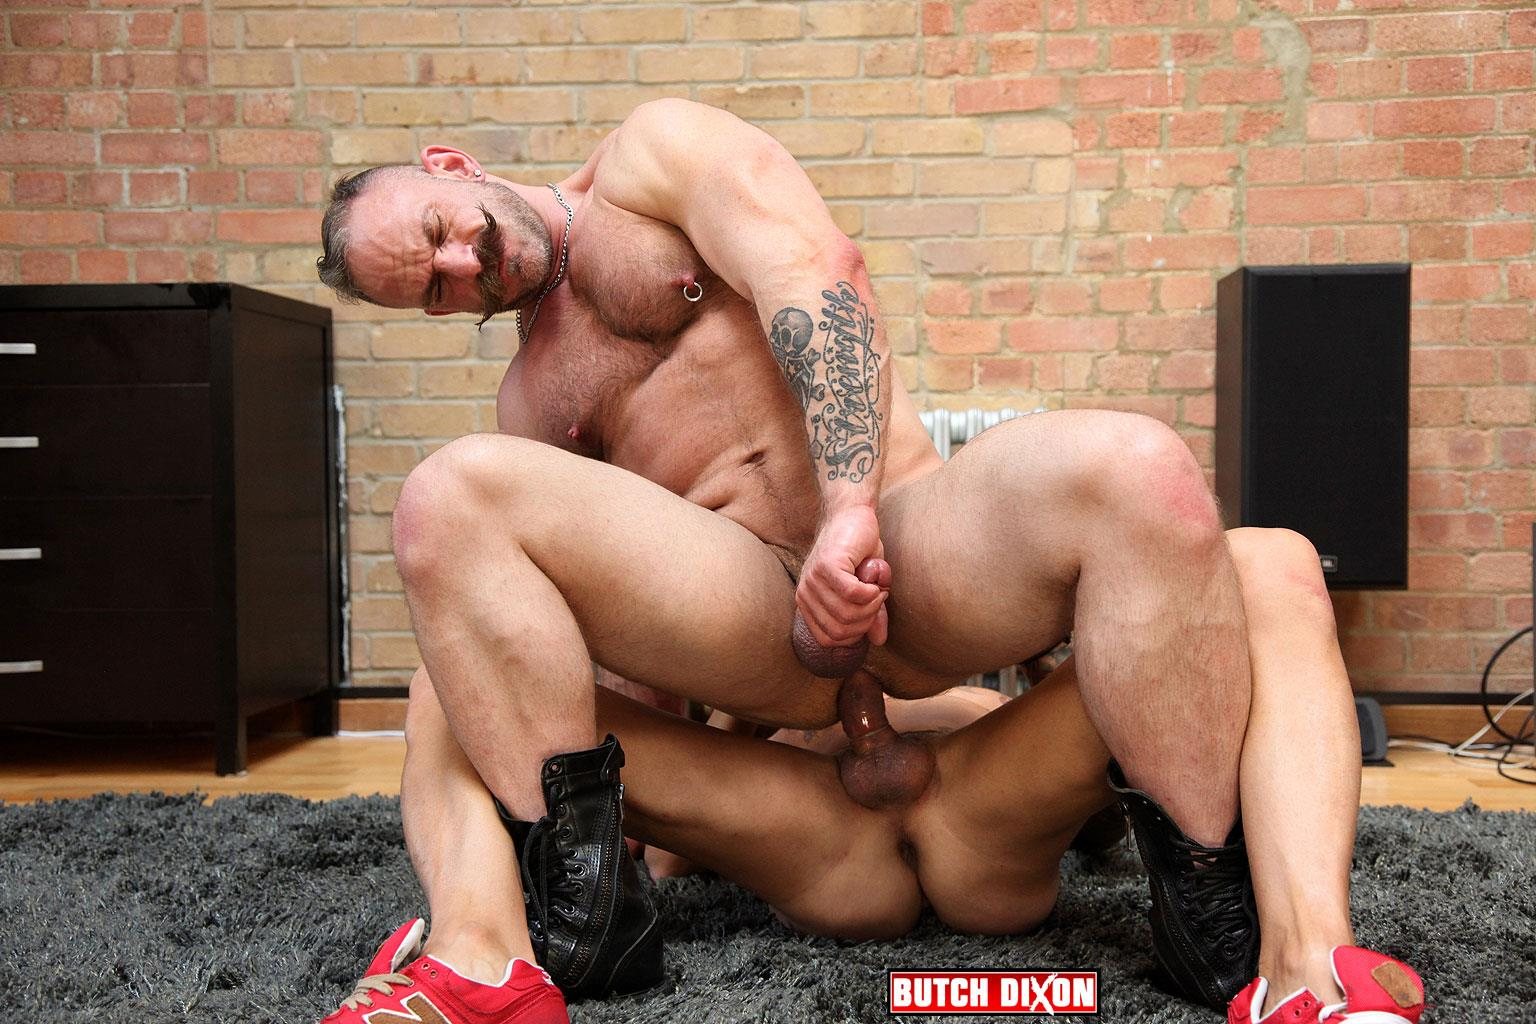 Butch-Dixon-Samuel-Colt-and-Frank-Valencia-Hairy-Muscle-Daddy-Getting-Fucked-By-Latino-Cock-Amateur-Gay-Porn-15 Happy Fathers Day: Hairy Muscle Daddy Samuel Colt Taking A Big Cock Up The Ass